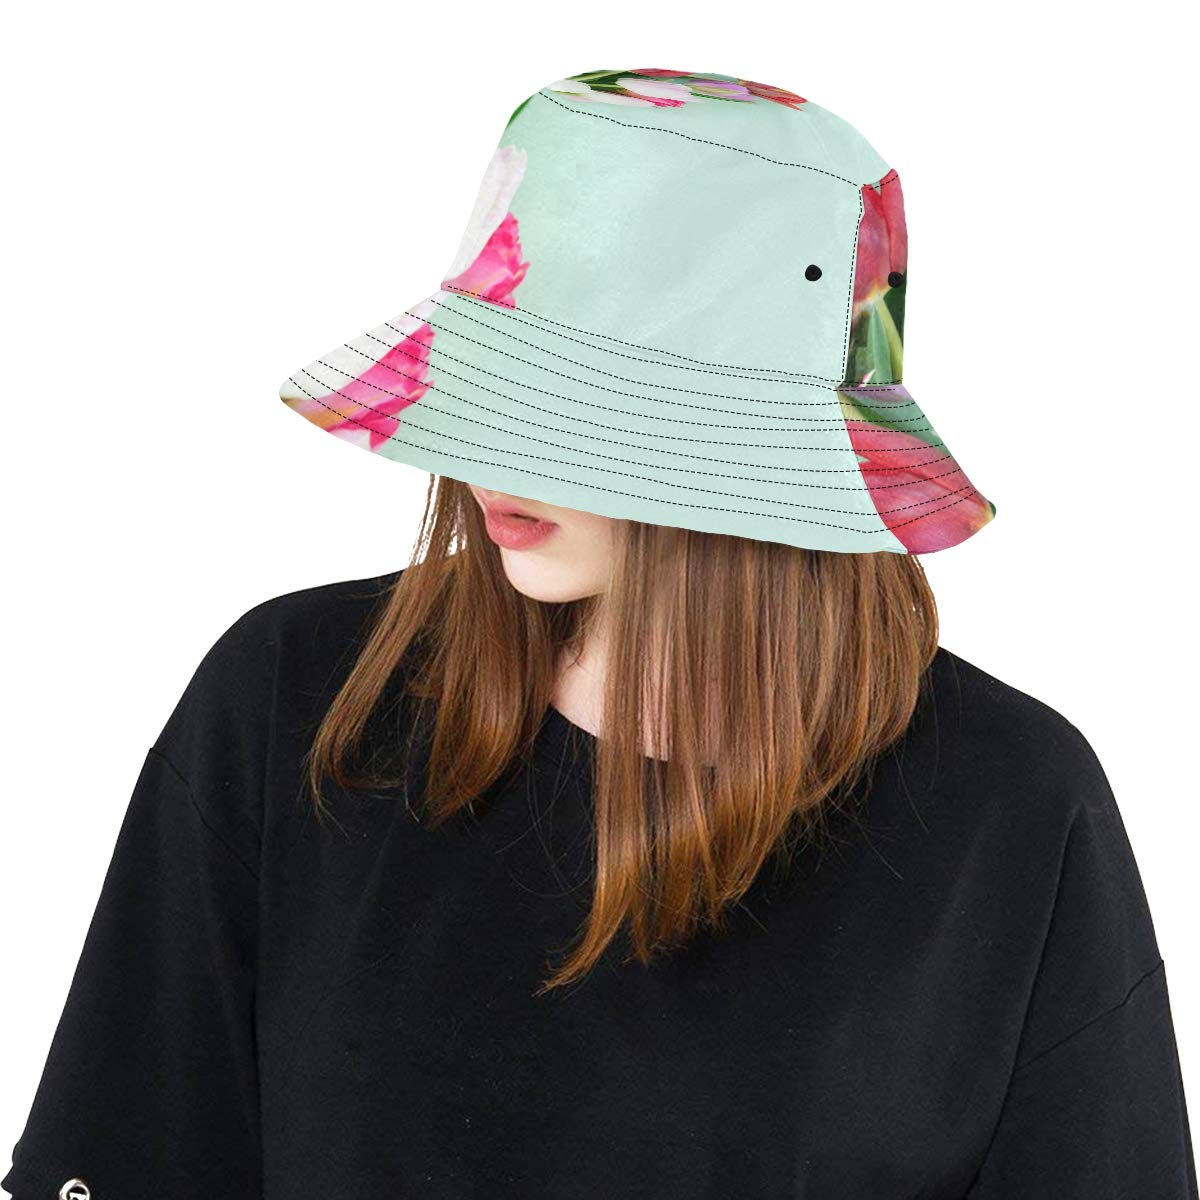 Aroma-Like Tulip New Summer Unisex Cotton Fashion Fishing Sun Bucket Hats for Kid Teens Women and Men with Customize Top Packable Fisherman Cap for Outdoor Travel